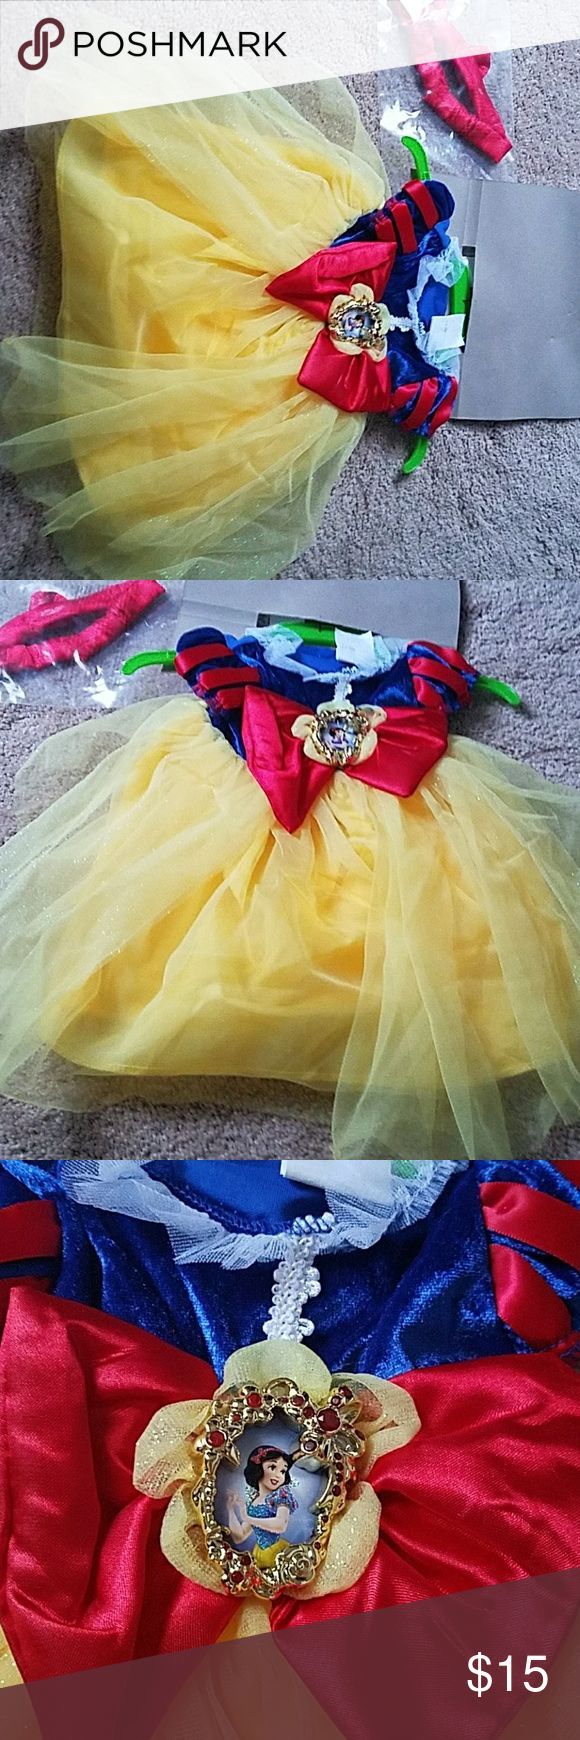 NWT Disney Baby Snow White 6 months infant girl Never worn with tags attached Includes Headband Disney Baby Costumes